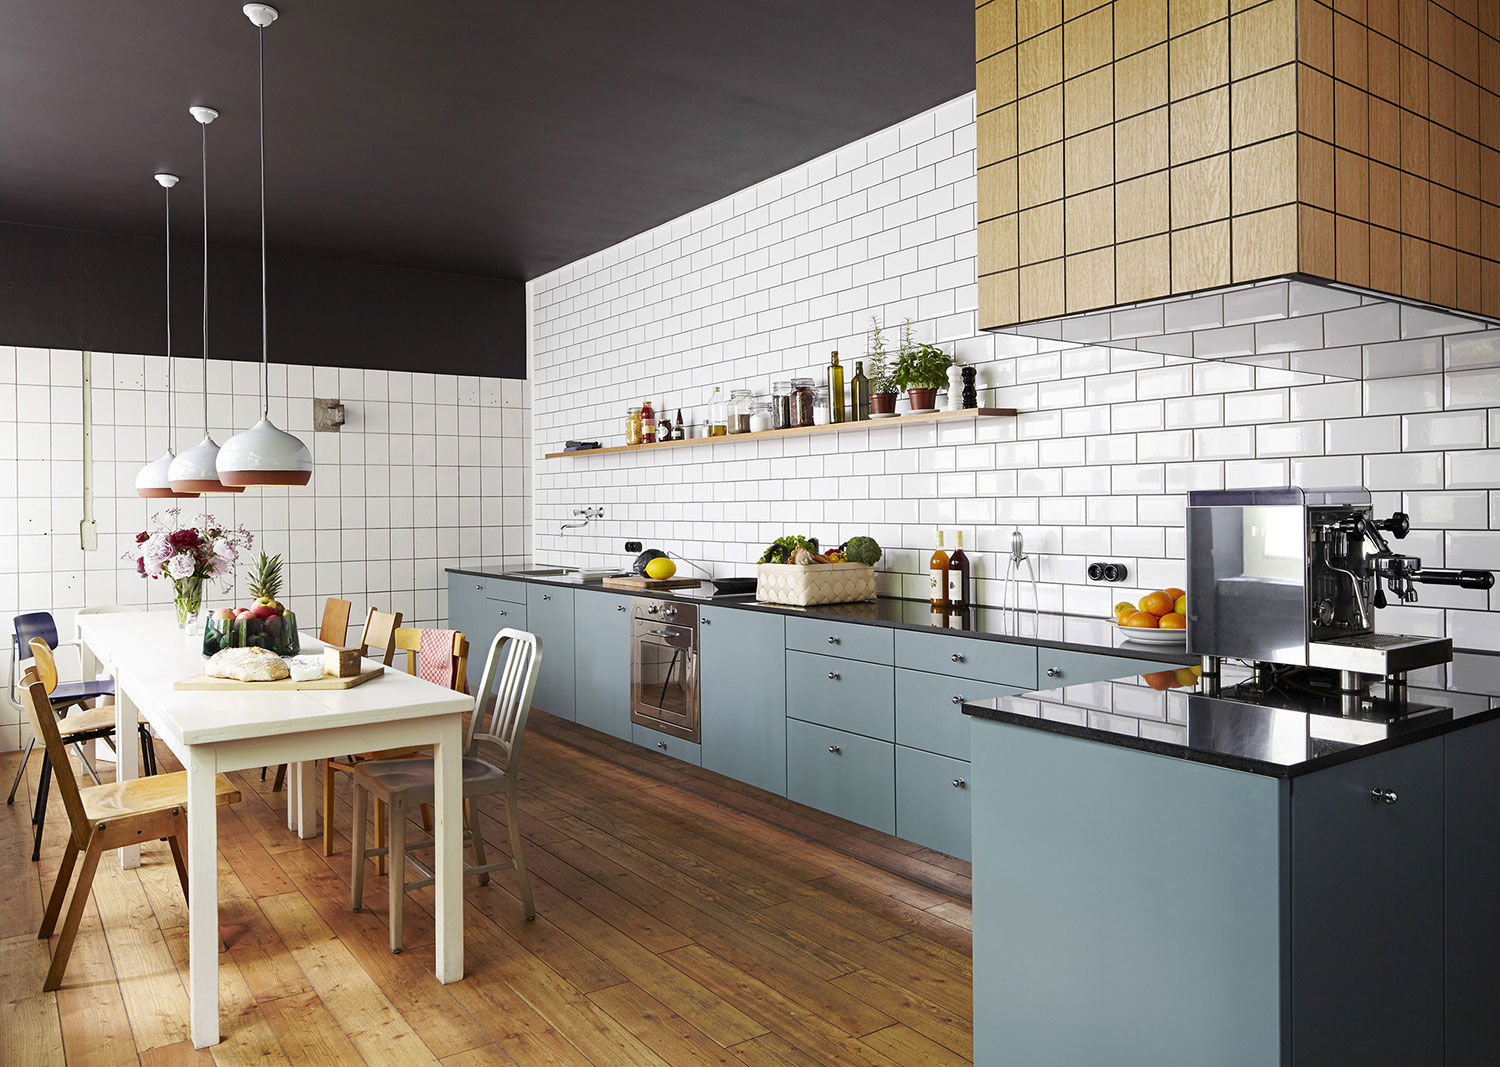 Halle A By Designliga In Munich Germany Yellowtrace